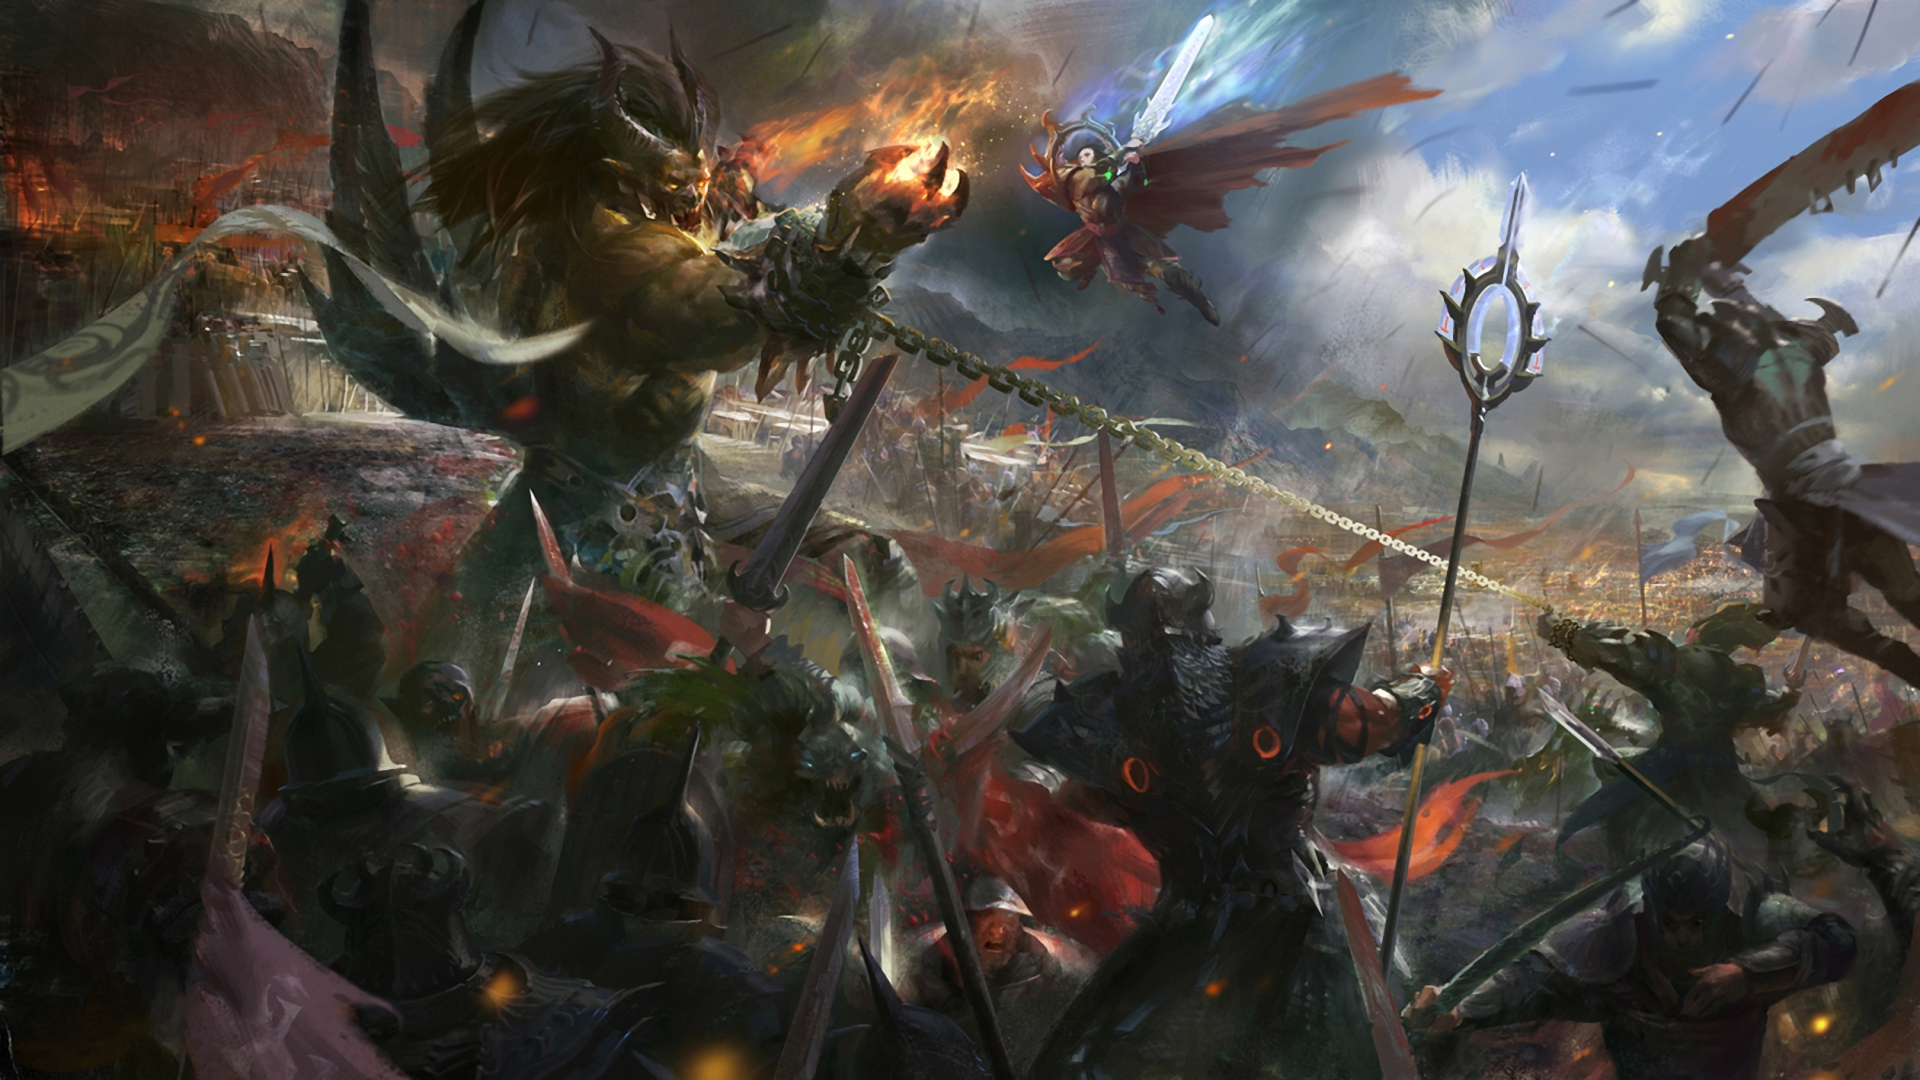 Epic battle fantasy wallpaper - photo#11